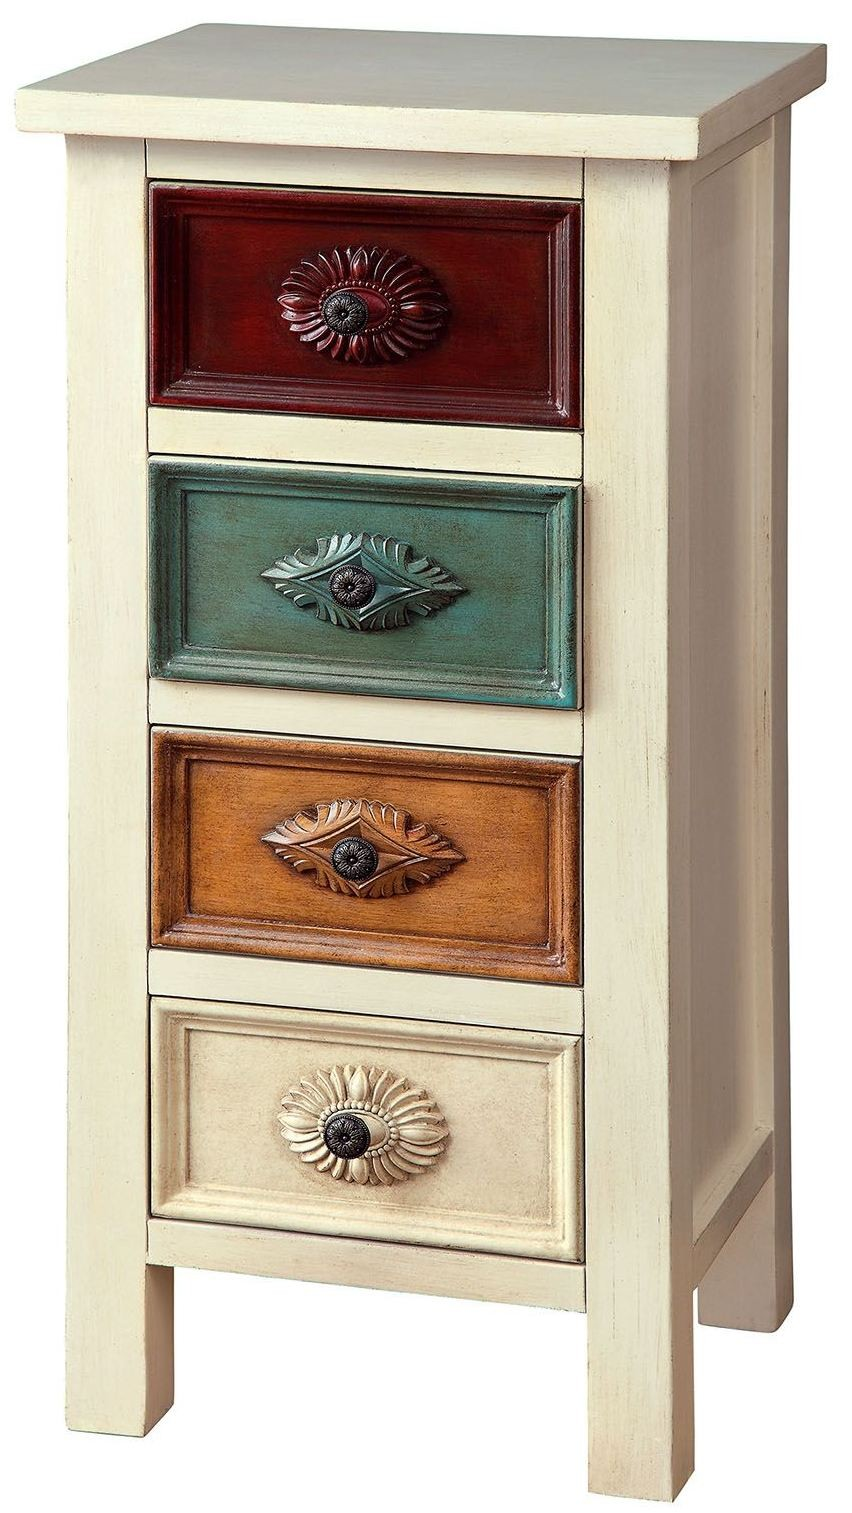 outstanding hallway cabinets furniture | Shari Antique White Hallway Cabinet from Furniture of ...